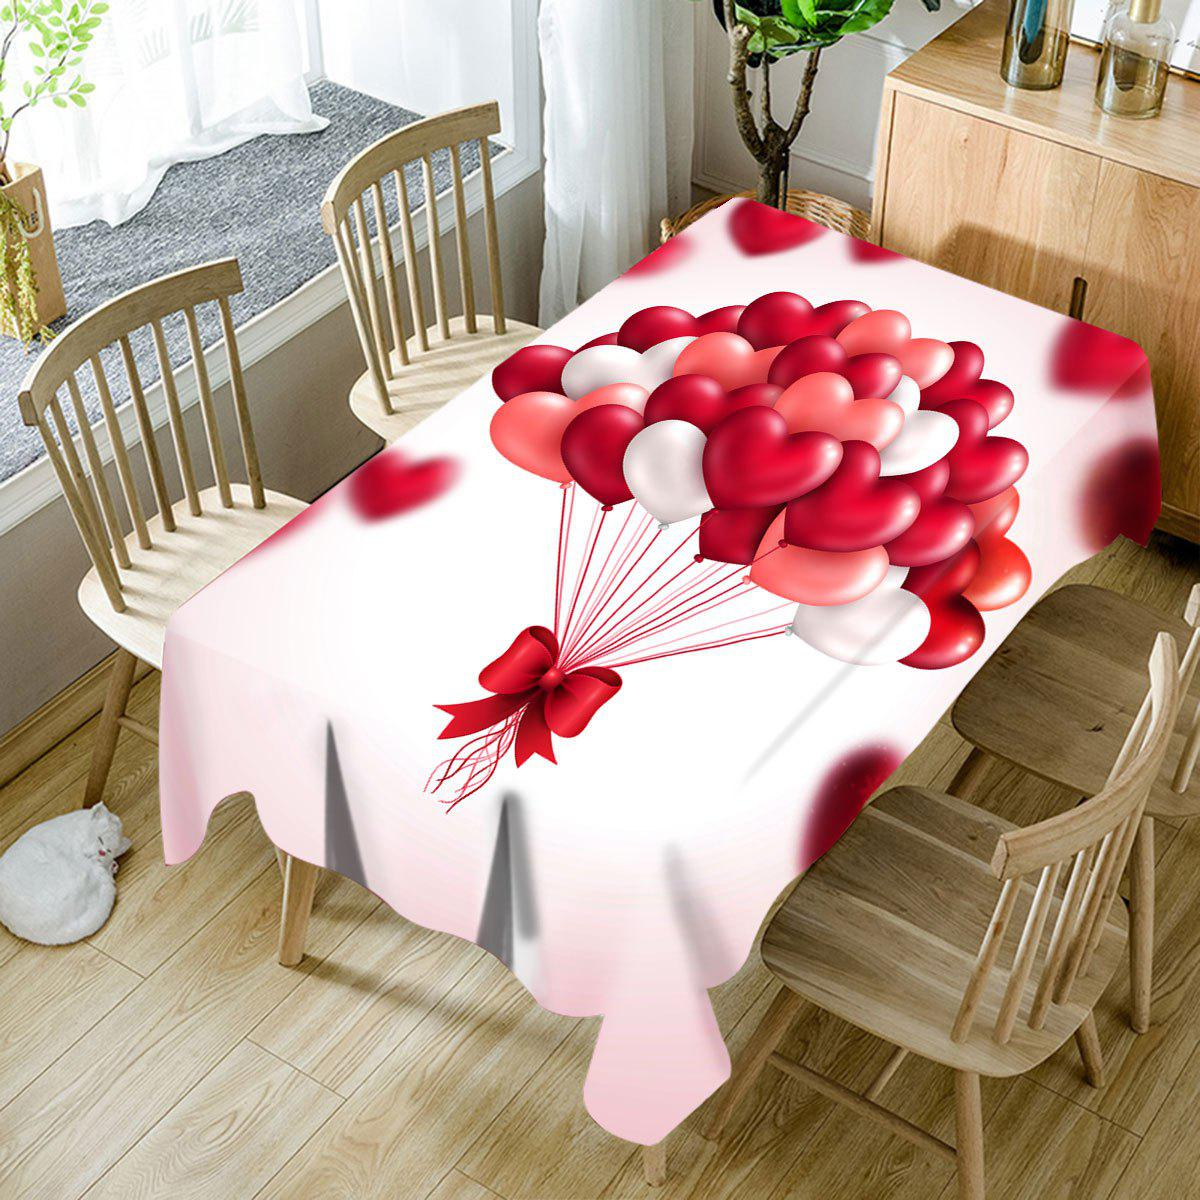 Affordable Valentine's Day Heart Balloons Print Waterproof Table Cloth